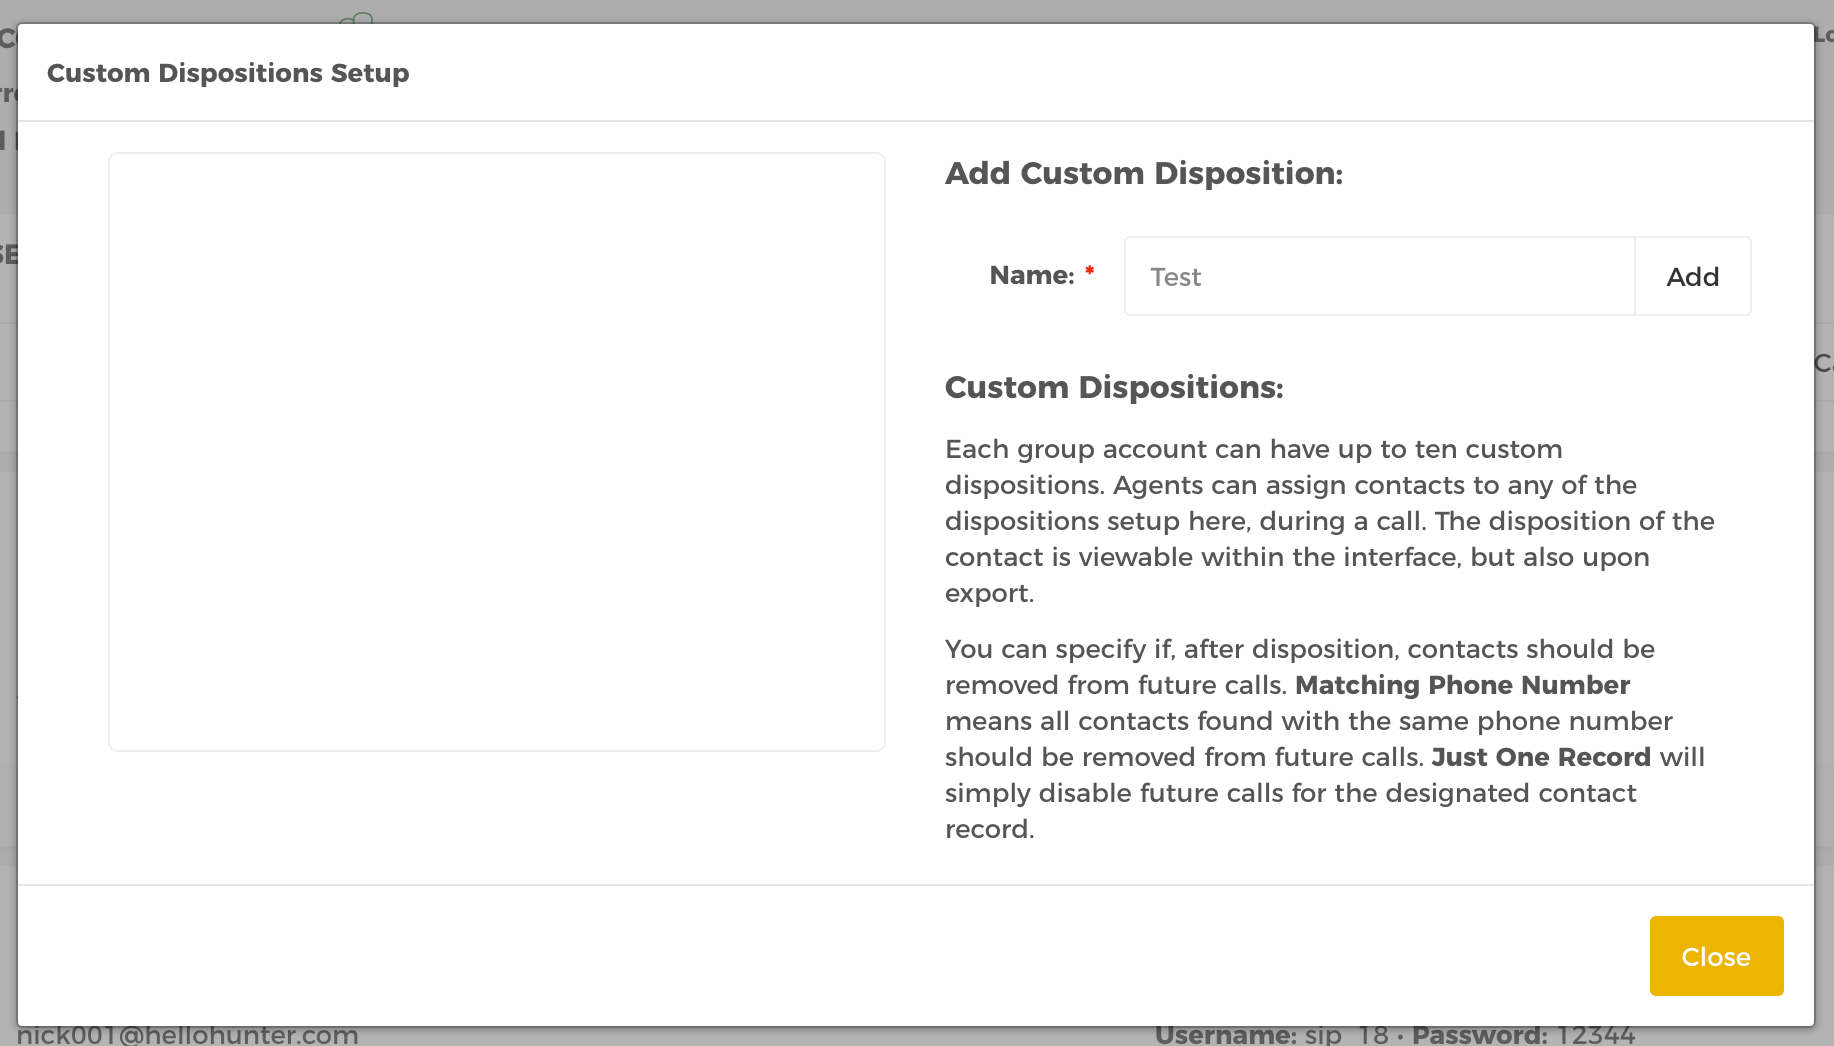 ../_images/custom-dispositions.png